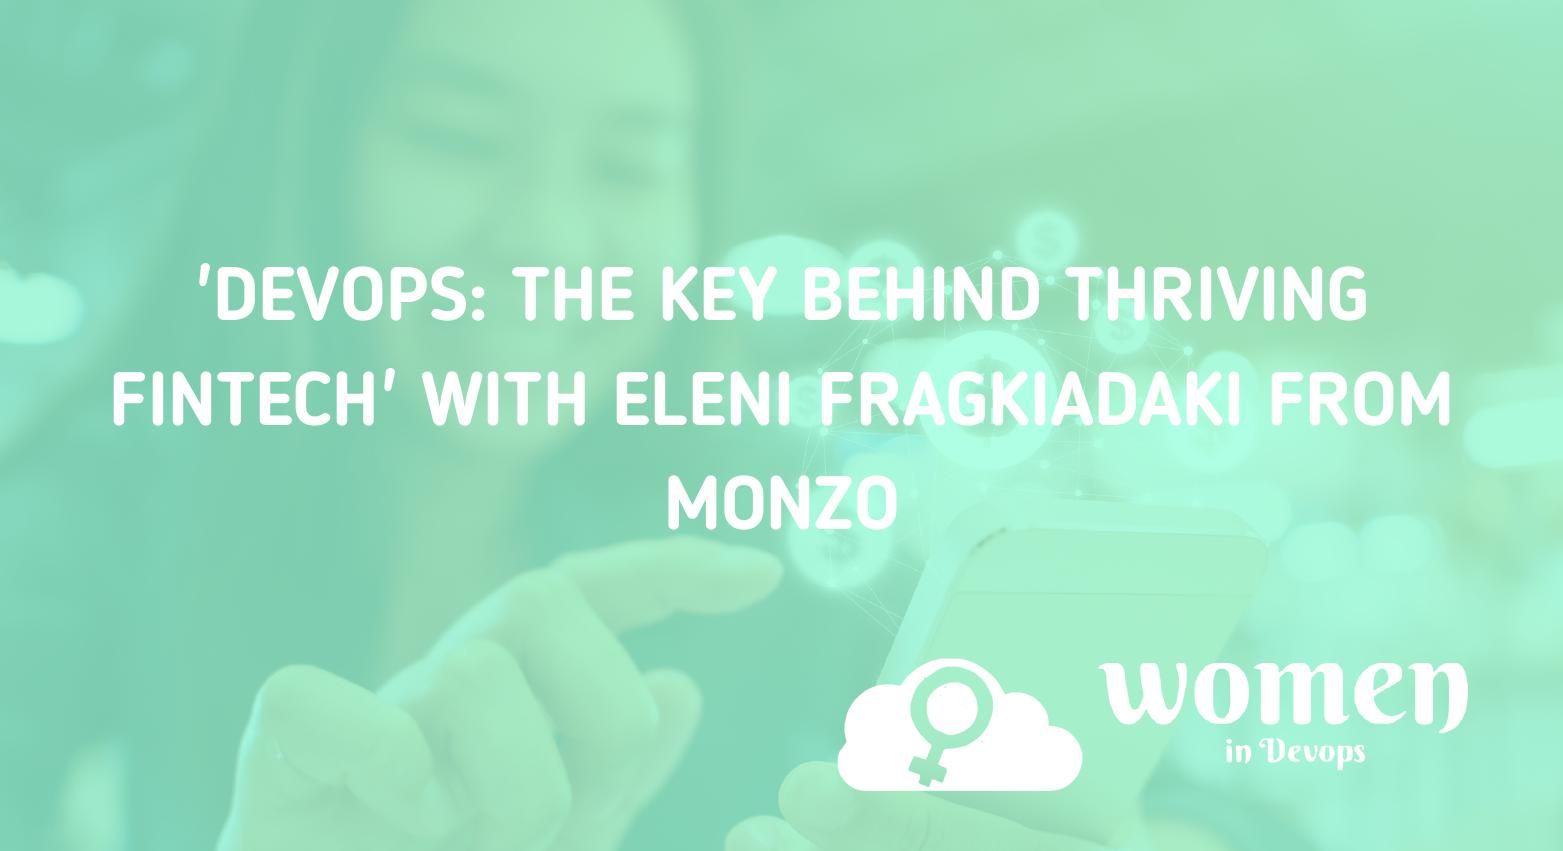 Article: 'DevOps: The key behind thriving fintech' with Eleni Fragkiadaki from Monzo